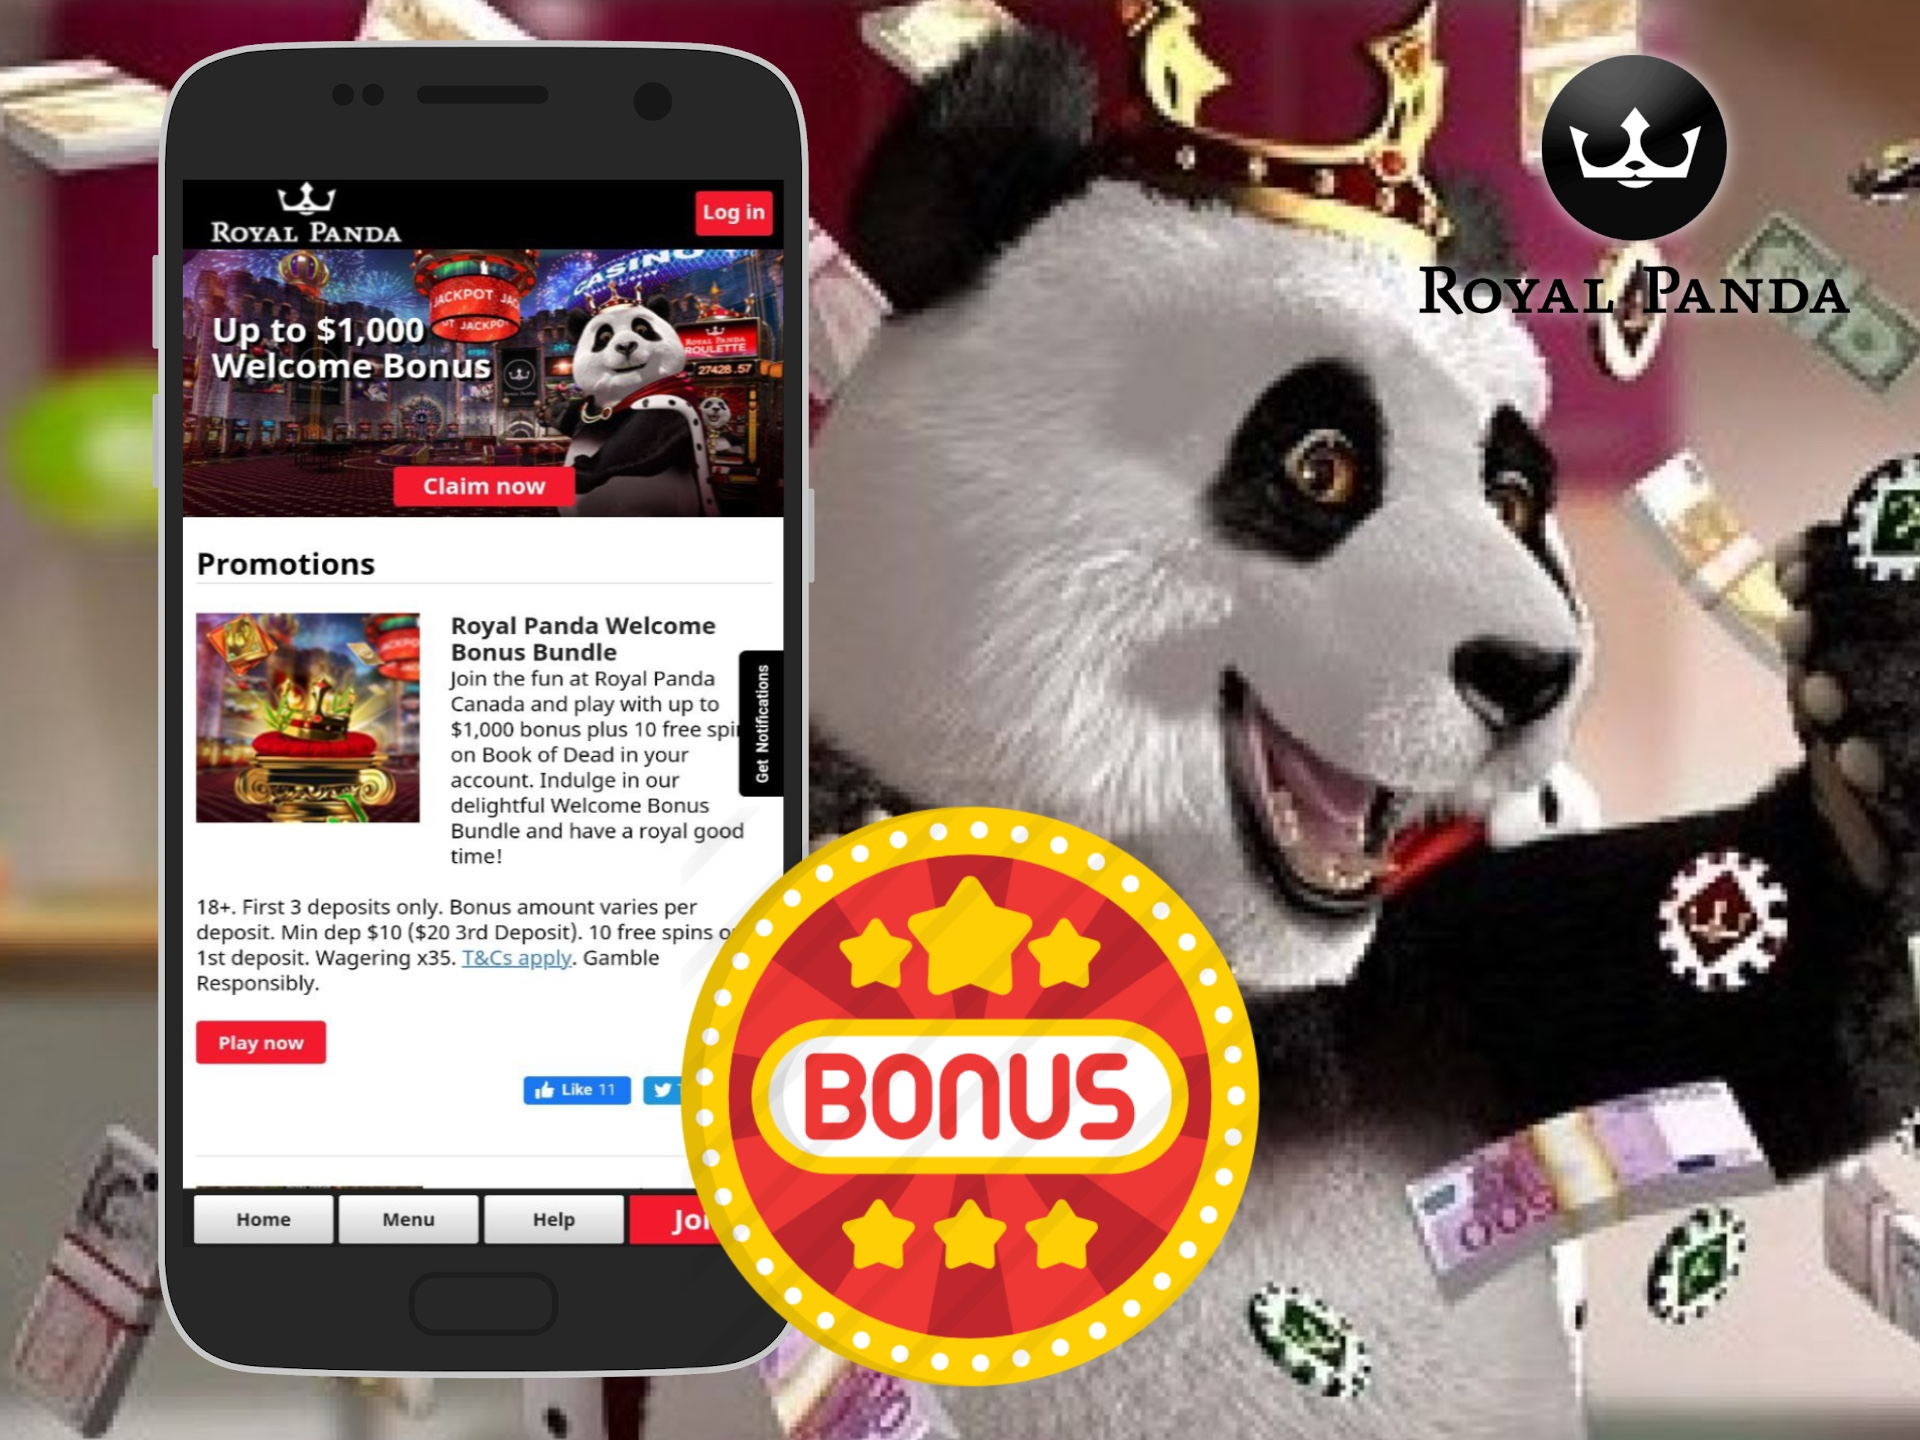 There are a lot of promos and bonuses for both new and regular players at Royal Panda.